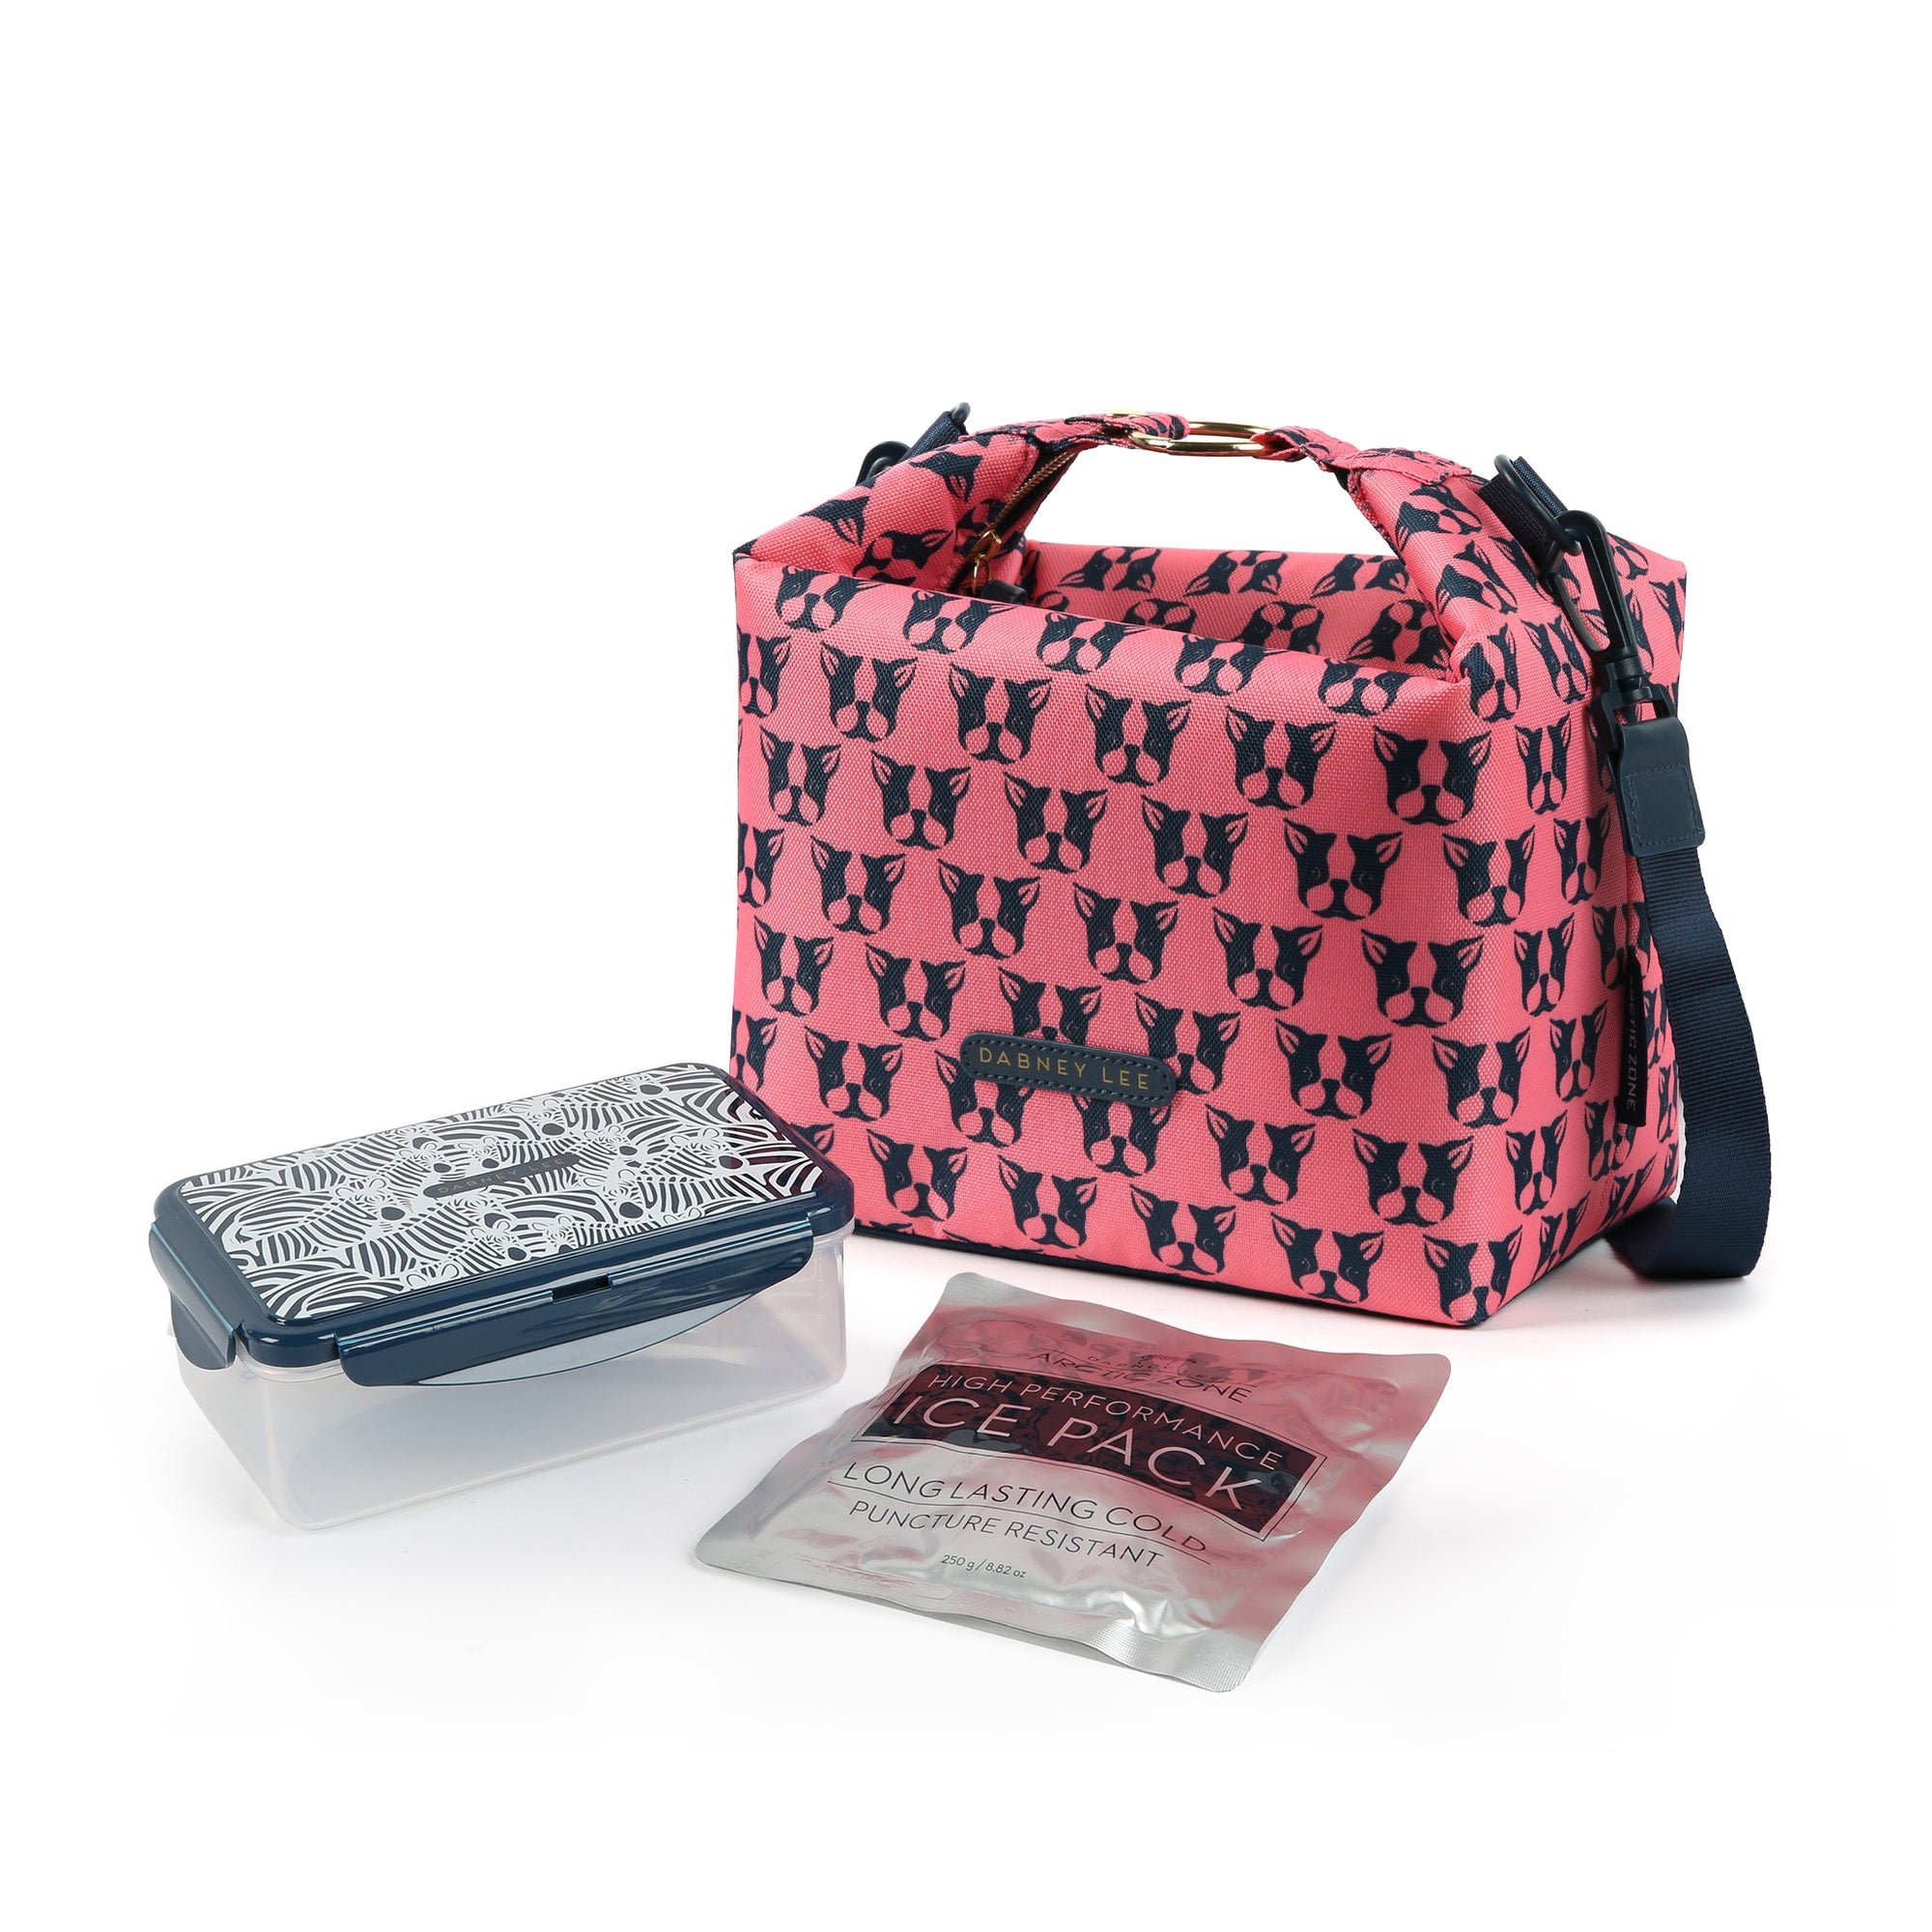 Arctic Zone® Dabney Lee Zinnia Tote - Polly Coral - Bag with ice pack and container